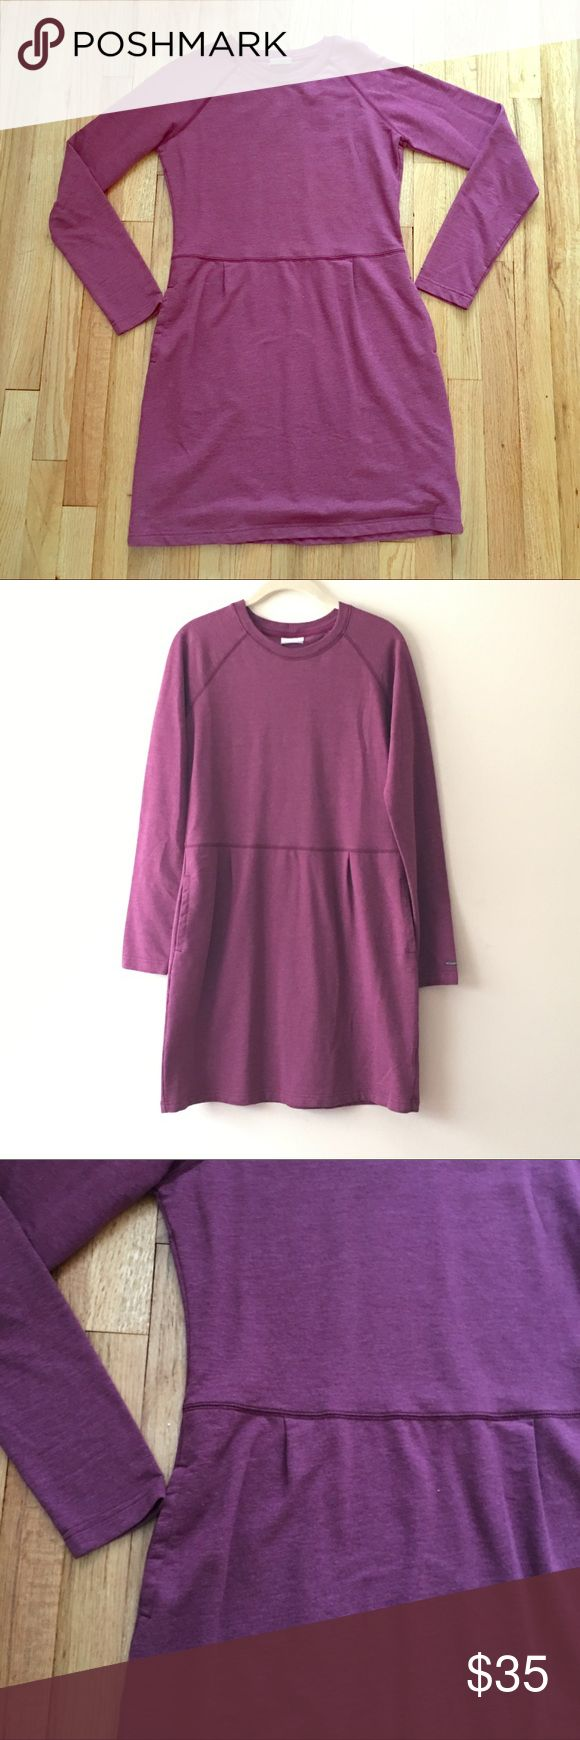 Like new Columbia sweatshirt dress Super soft & cute sweatshirt dress from Columbia brand. Columbia Dresses Long Sleeve